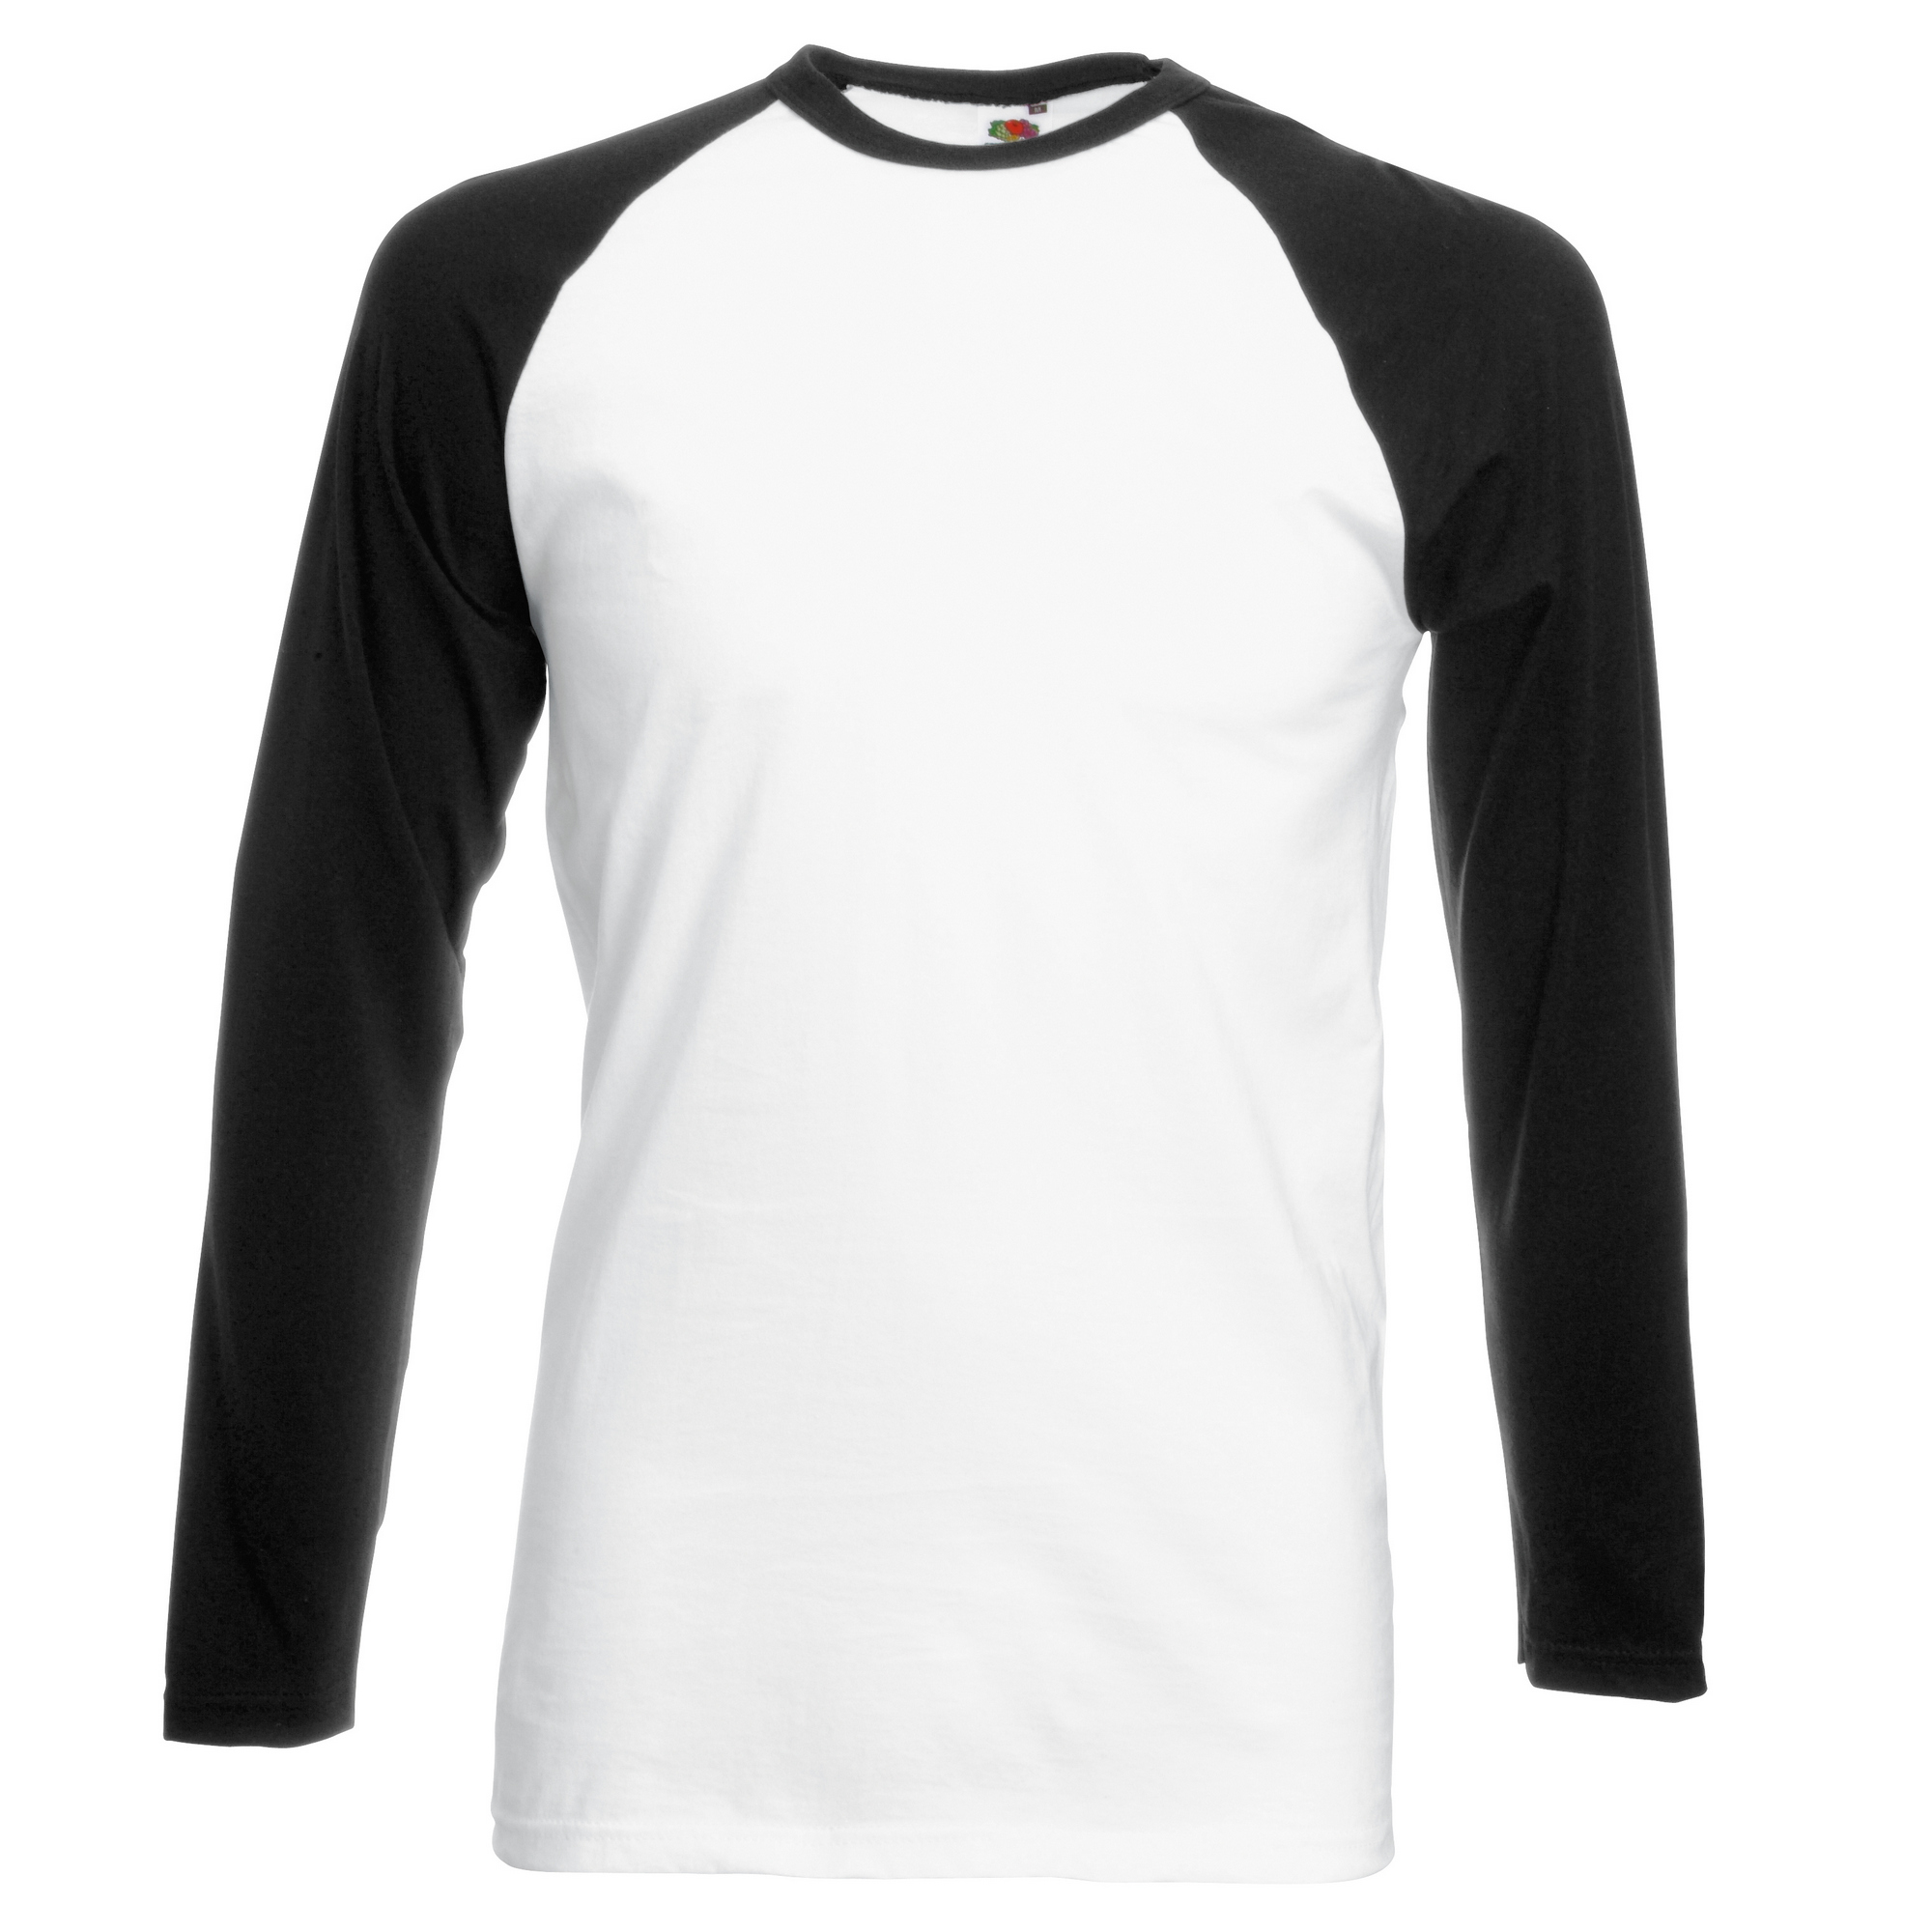 Fruit of the loom mens long sleeve baseball t shirt ebay Mens long sleeve white t shirt